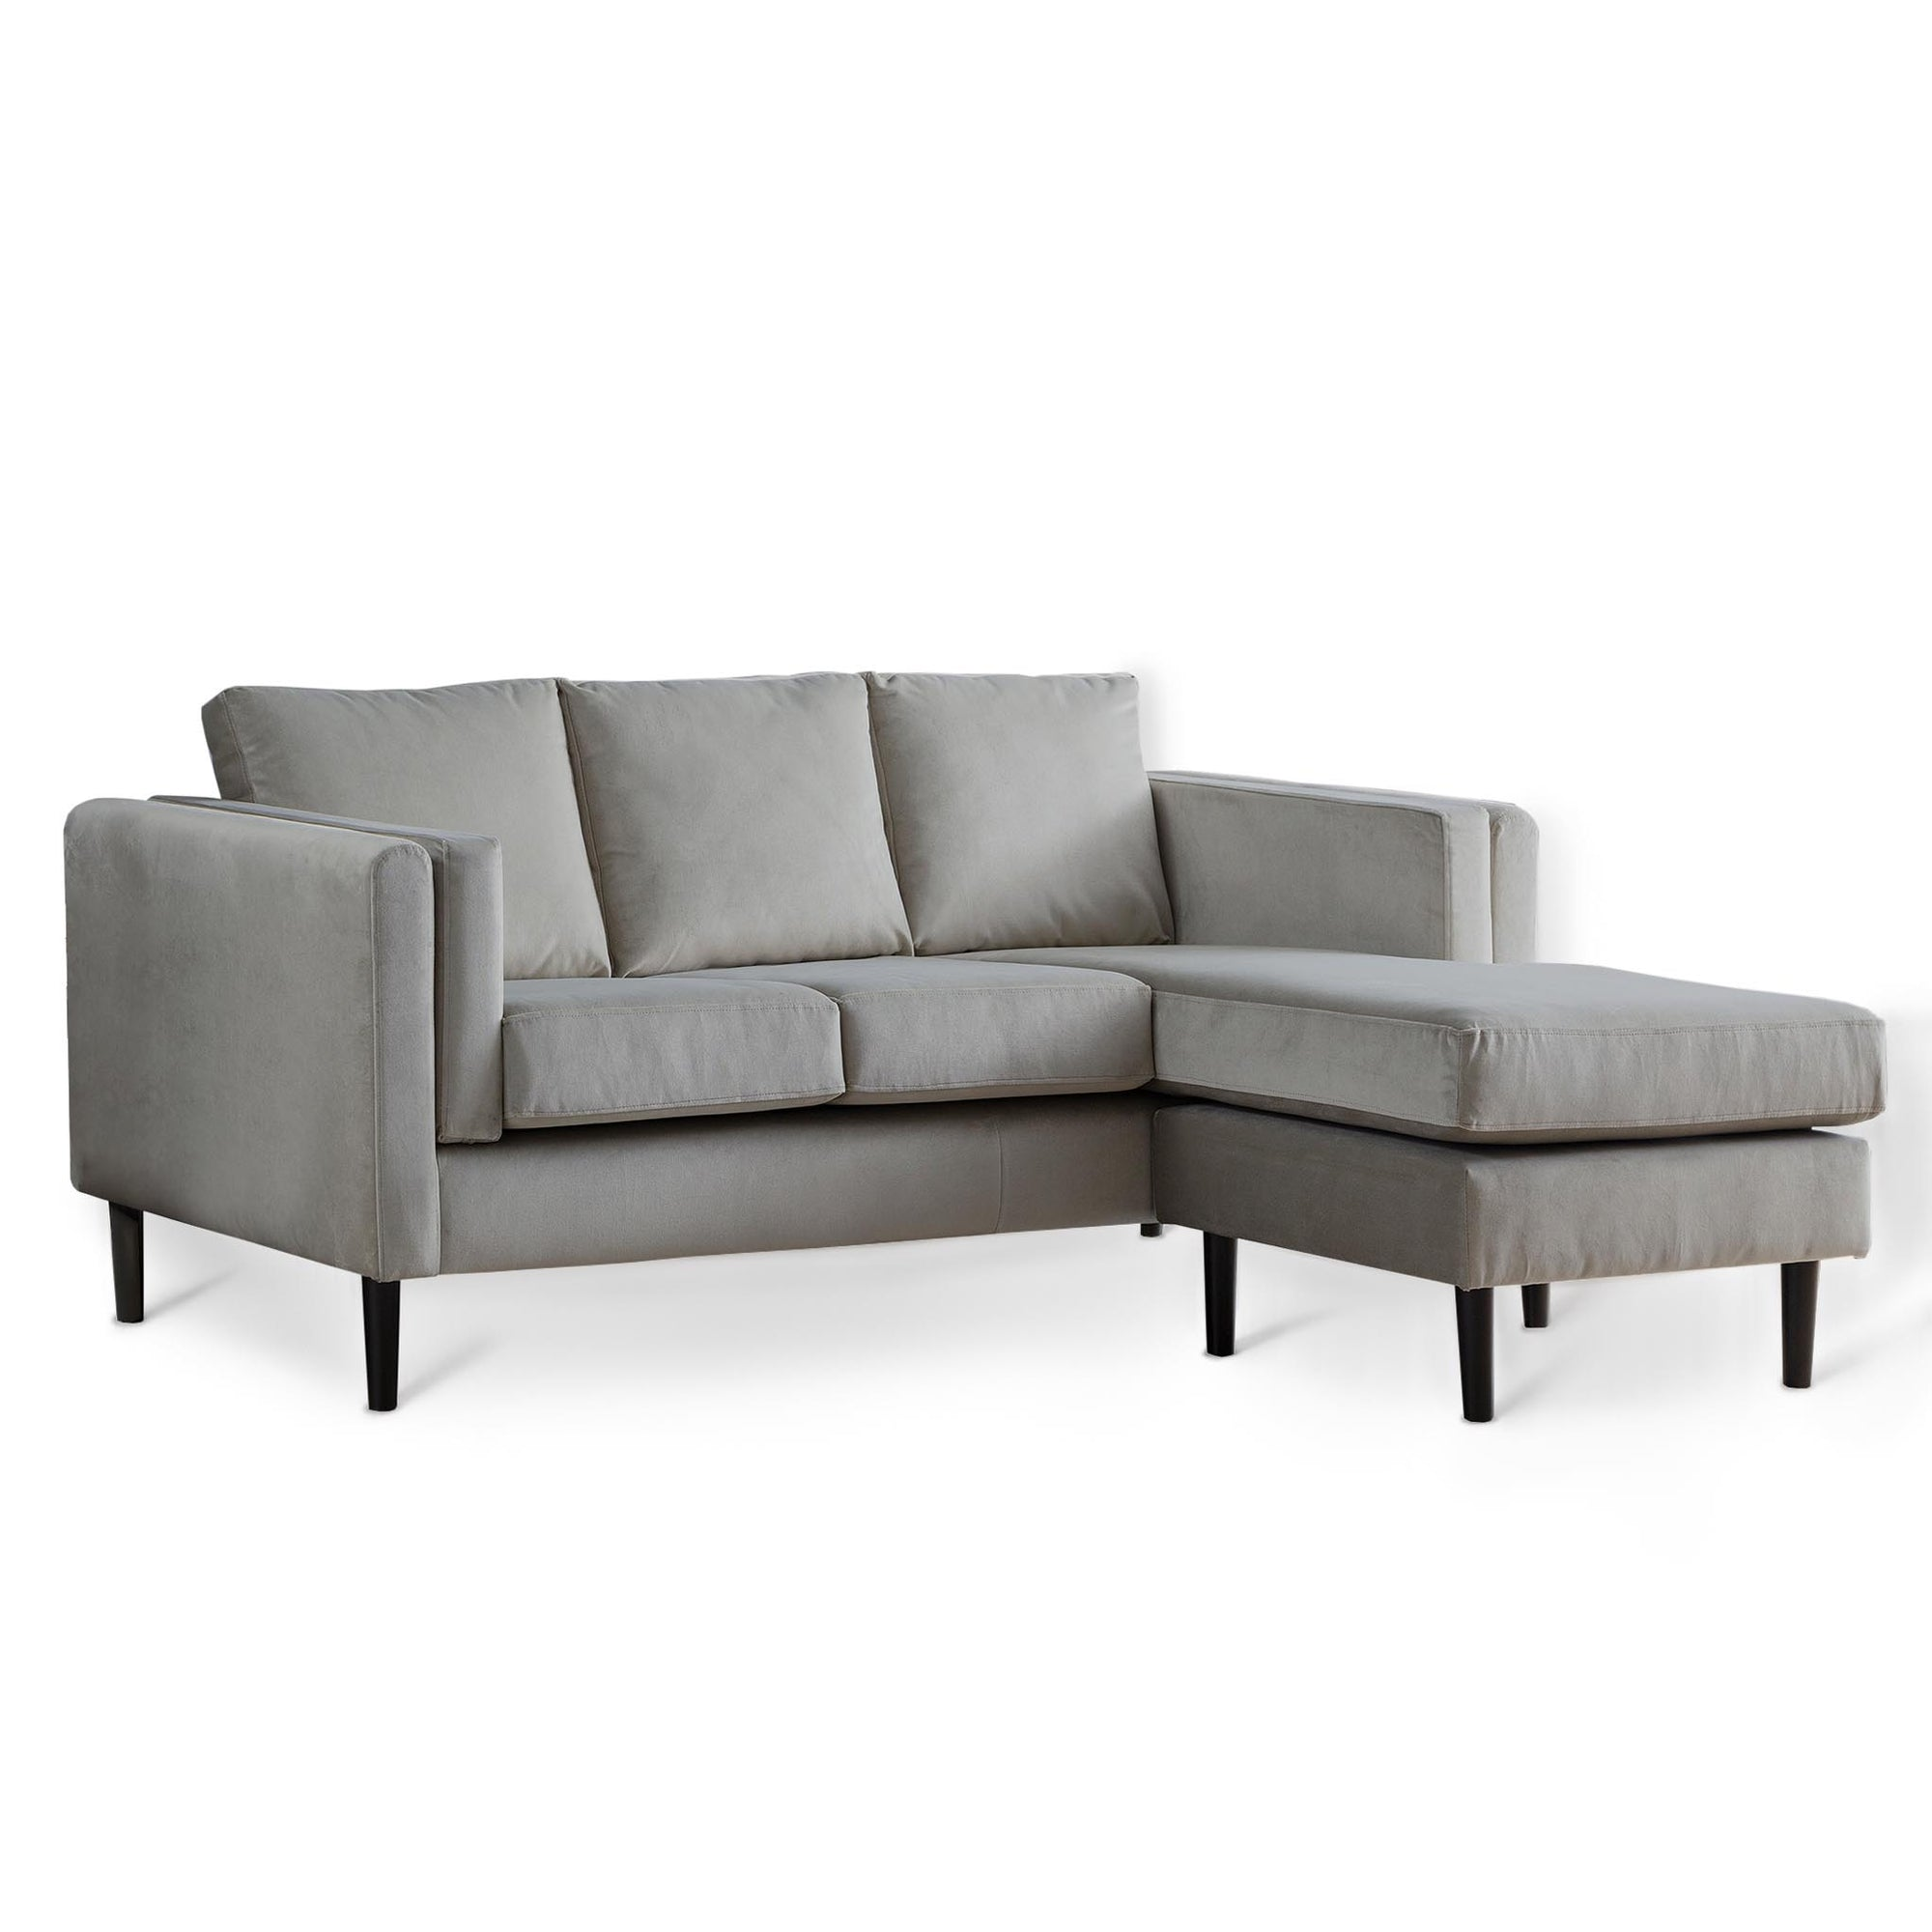 Sandringham Grey Velvet Corner Chaise Sofa from Roseland Furniture